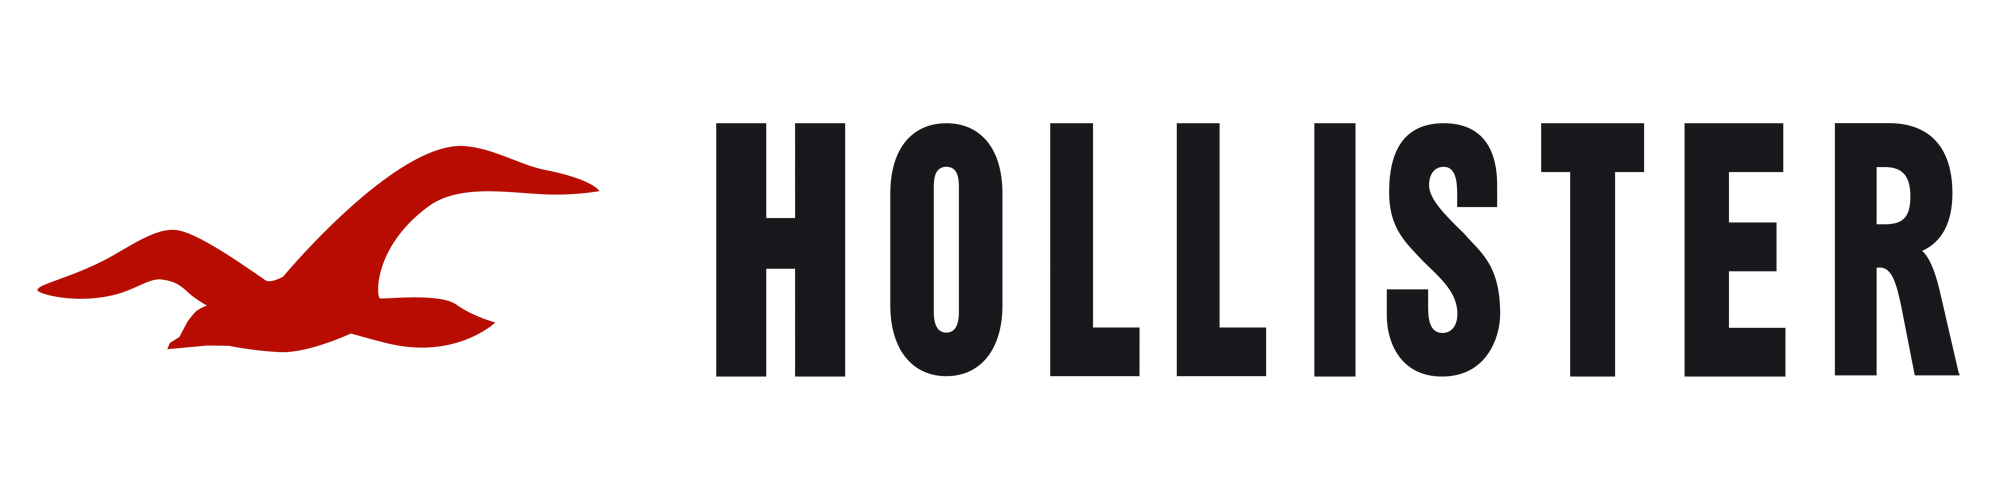 Hollister Logo, Hollister Symbol Meaning, History and